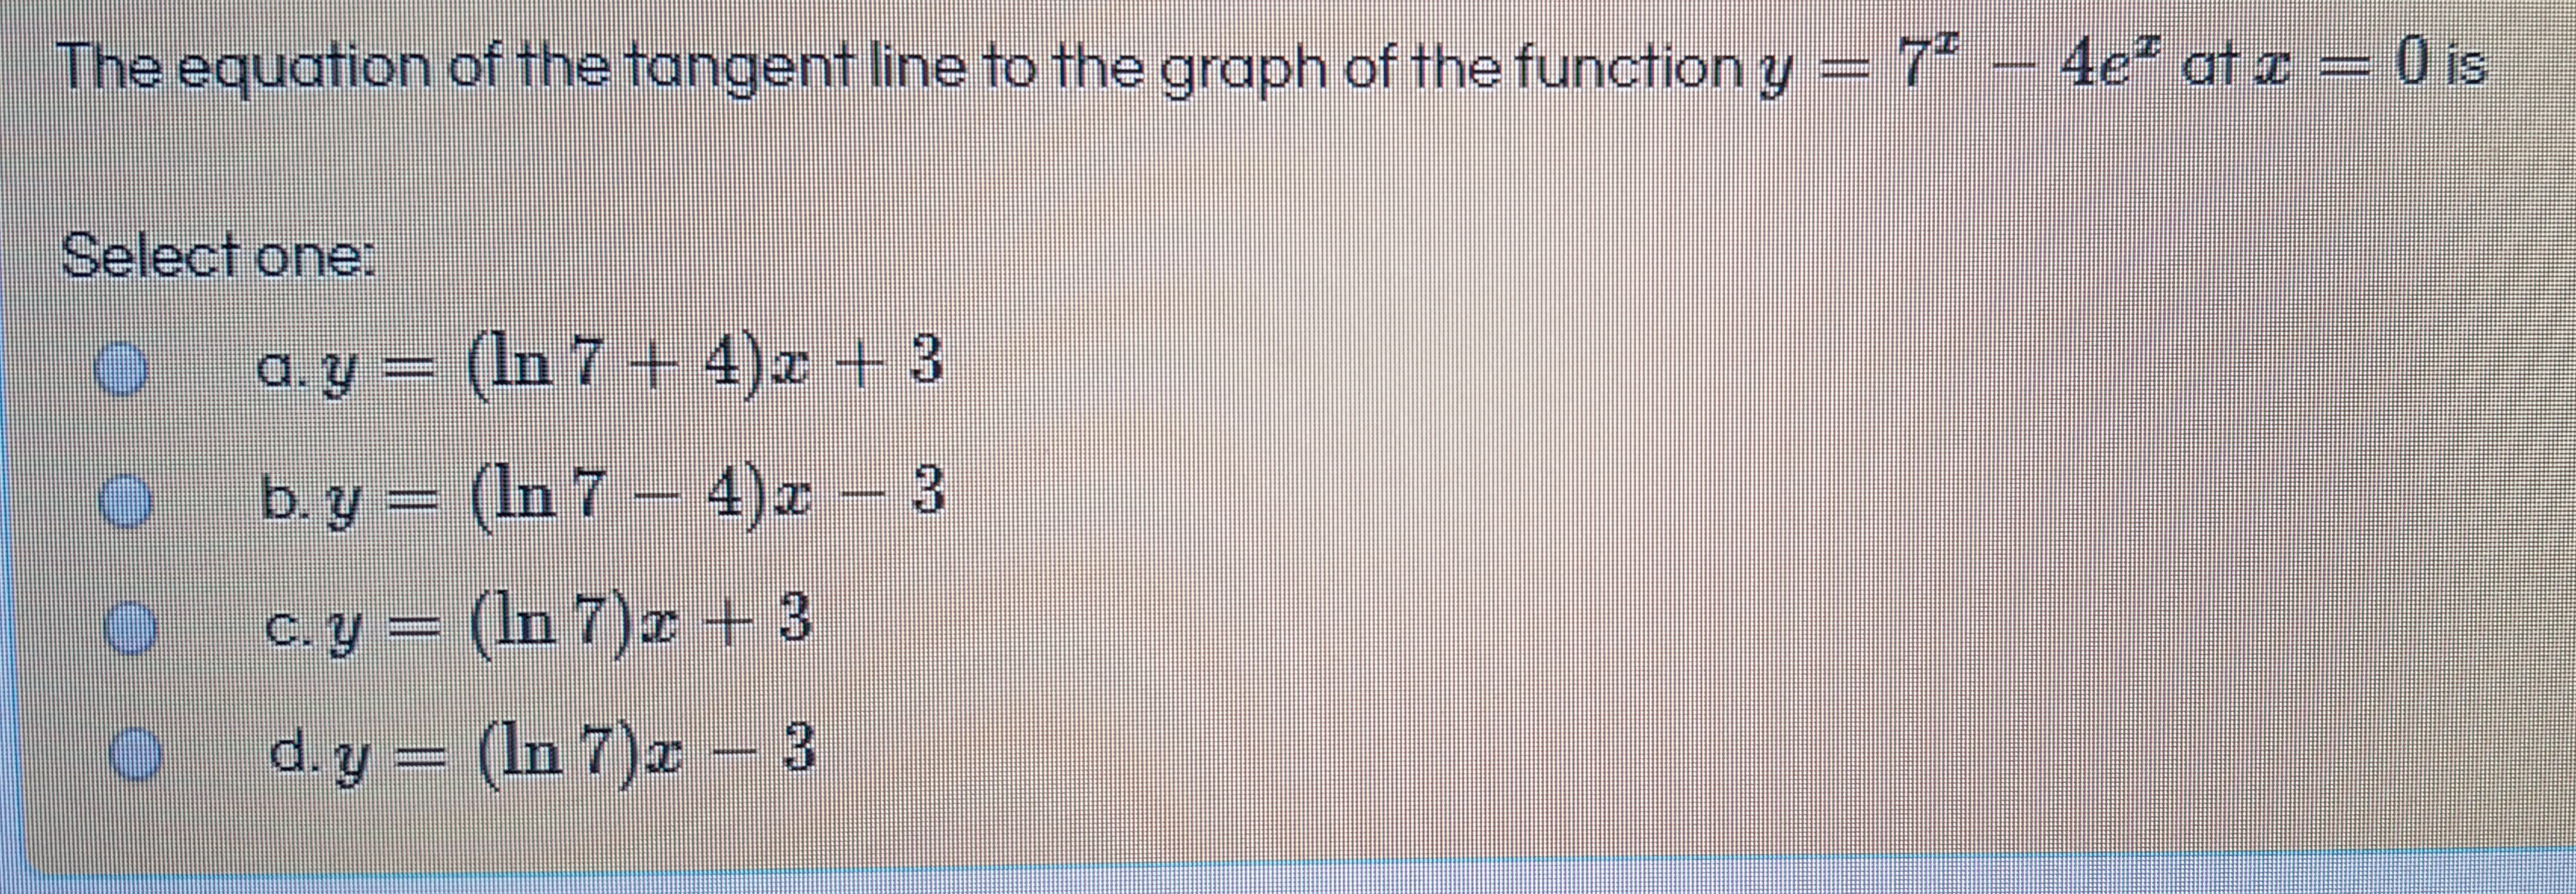 The equation of the tangent line to the graph of the function y = 7* – 4e² at a - O is